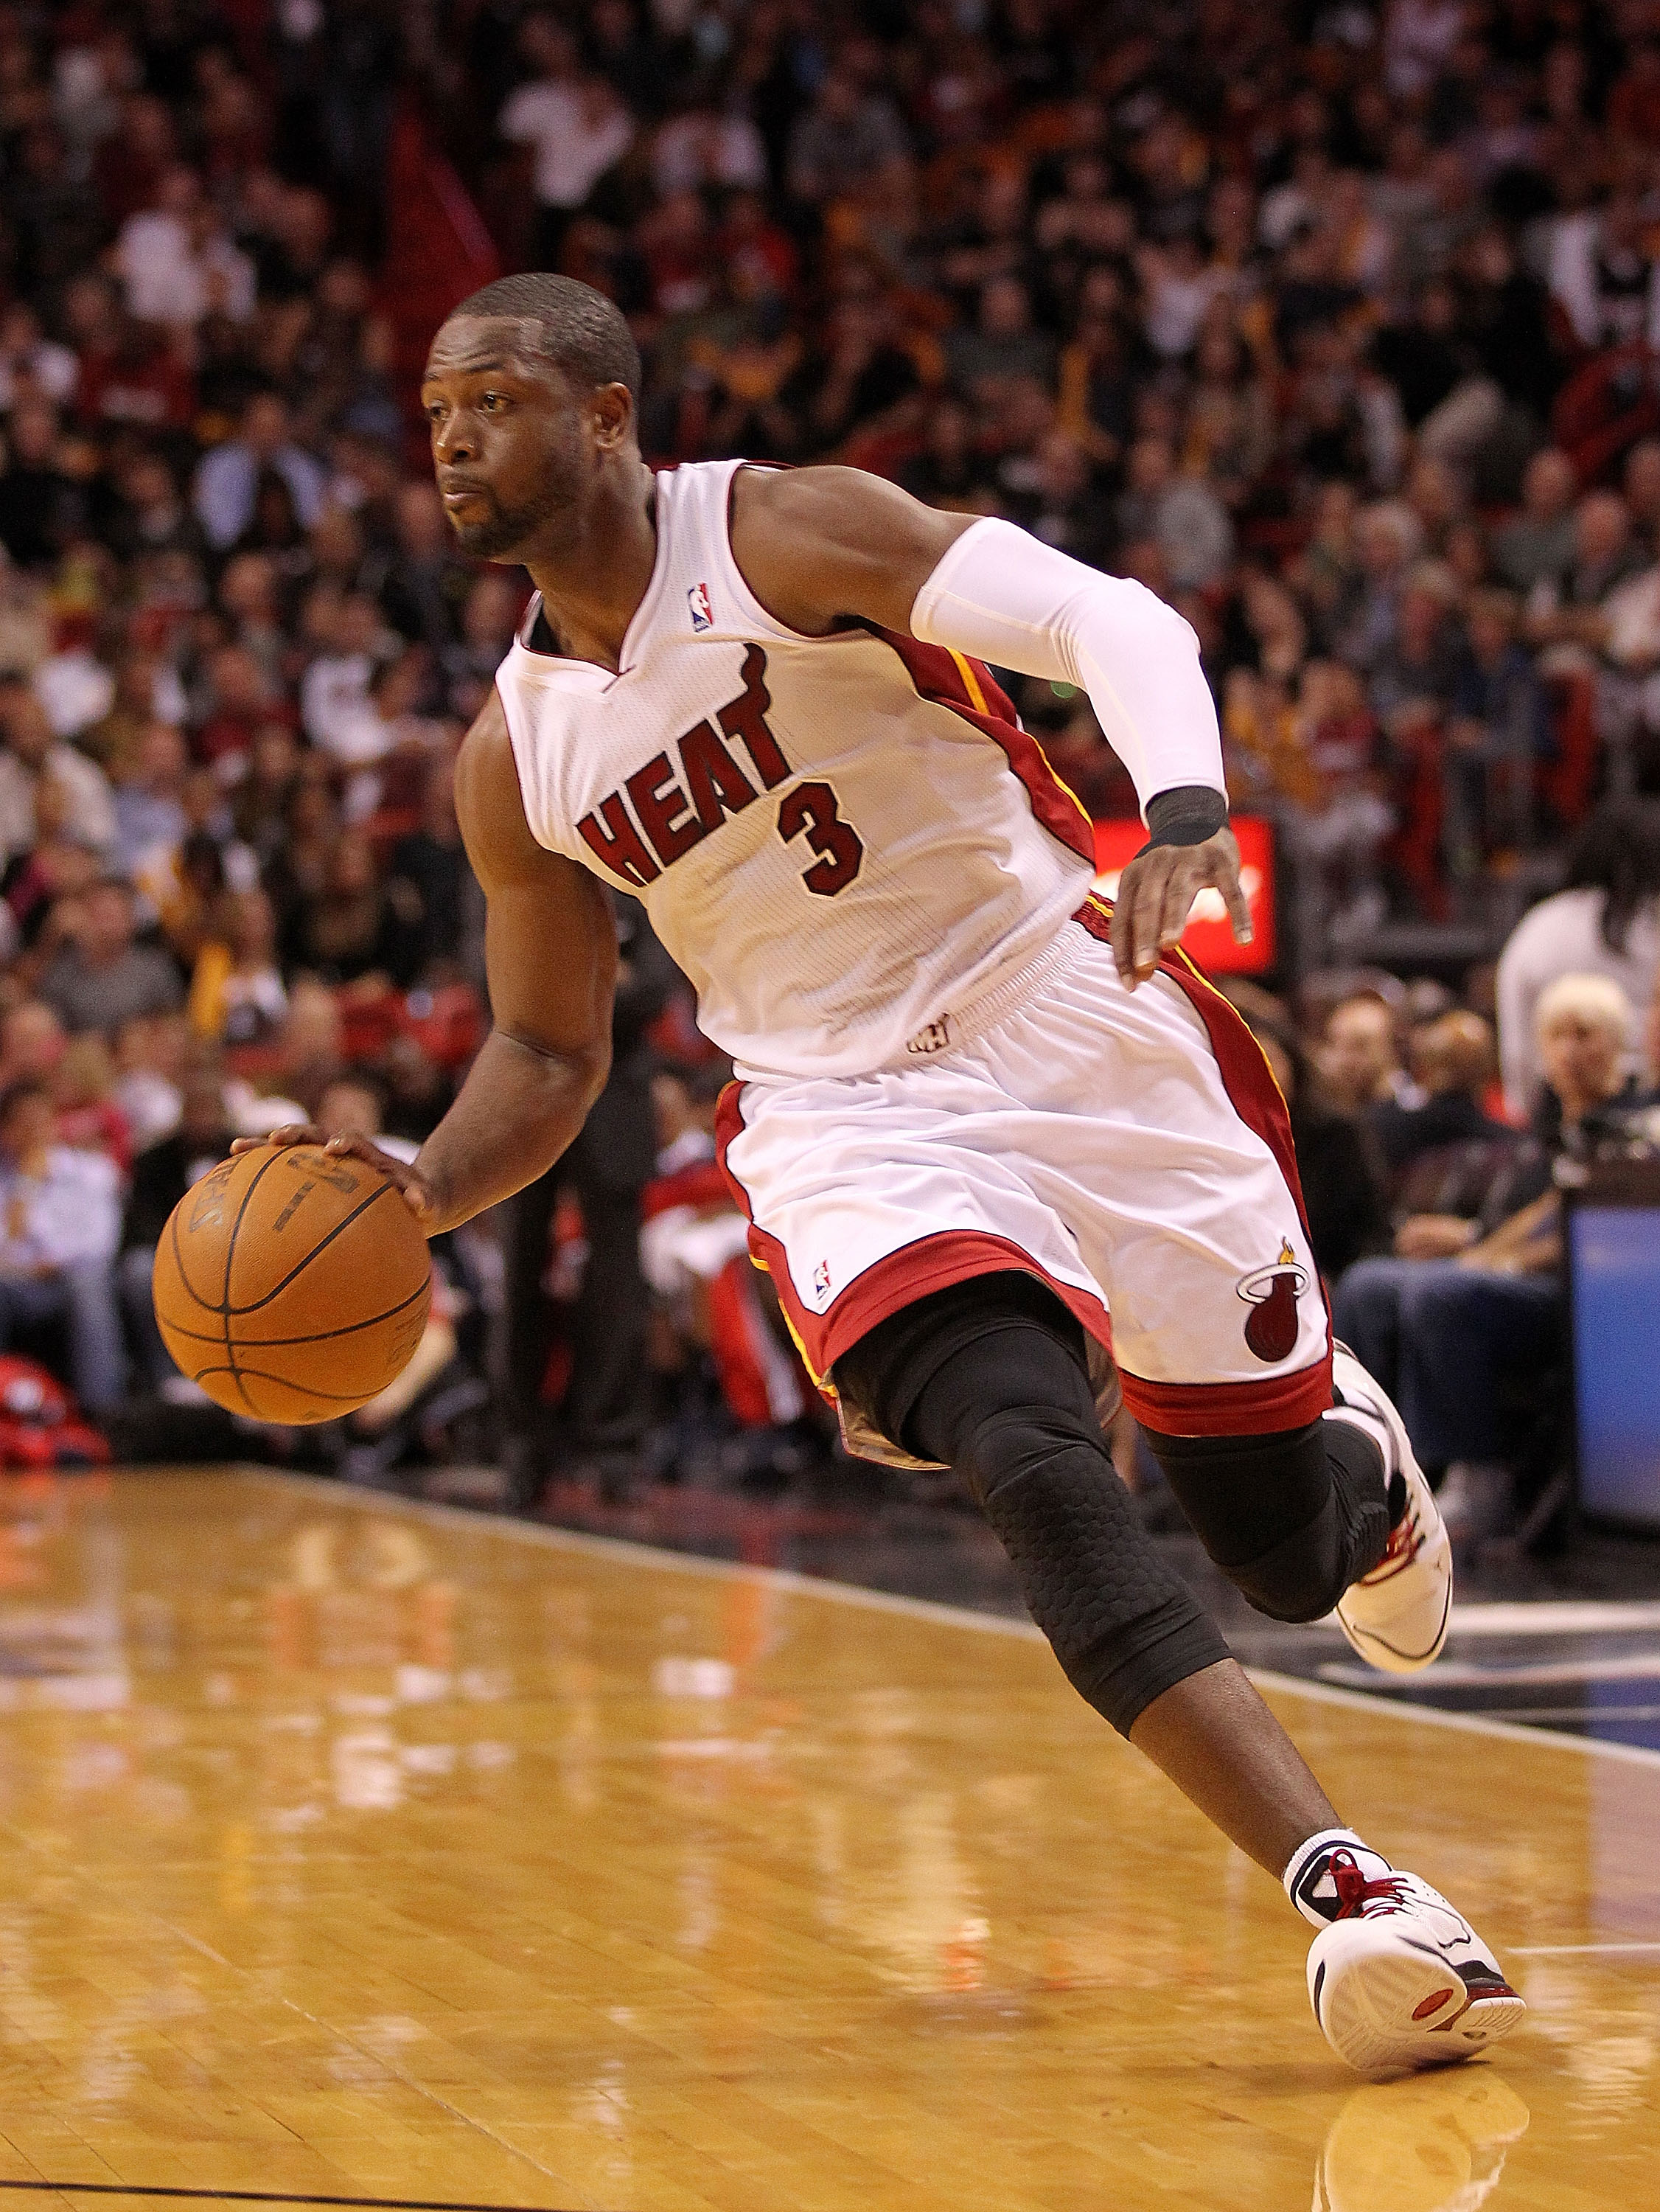 MIAMI, FL - DECEMBER 04:  Dwyane Wade #3 of the Miami Heat dribbles during a game against the Atlanta Hawks at American Airlines Arena on December 4, 2010 in Miami, Florida. NOTE TO USER: User expressly acknowledges and agrees that, by downloading and/or